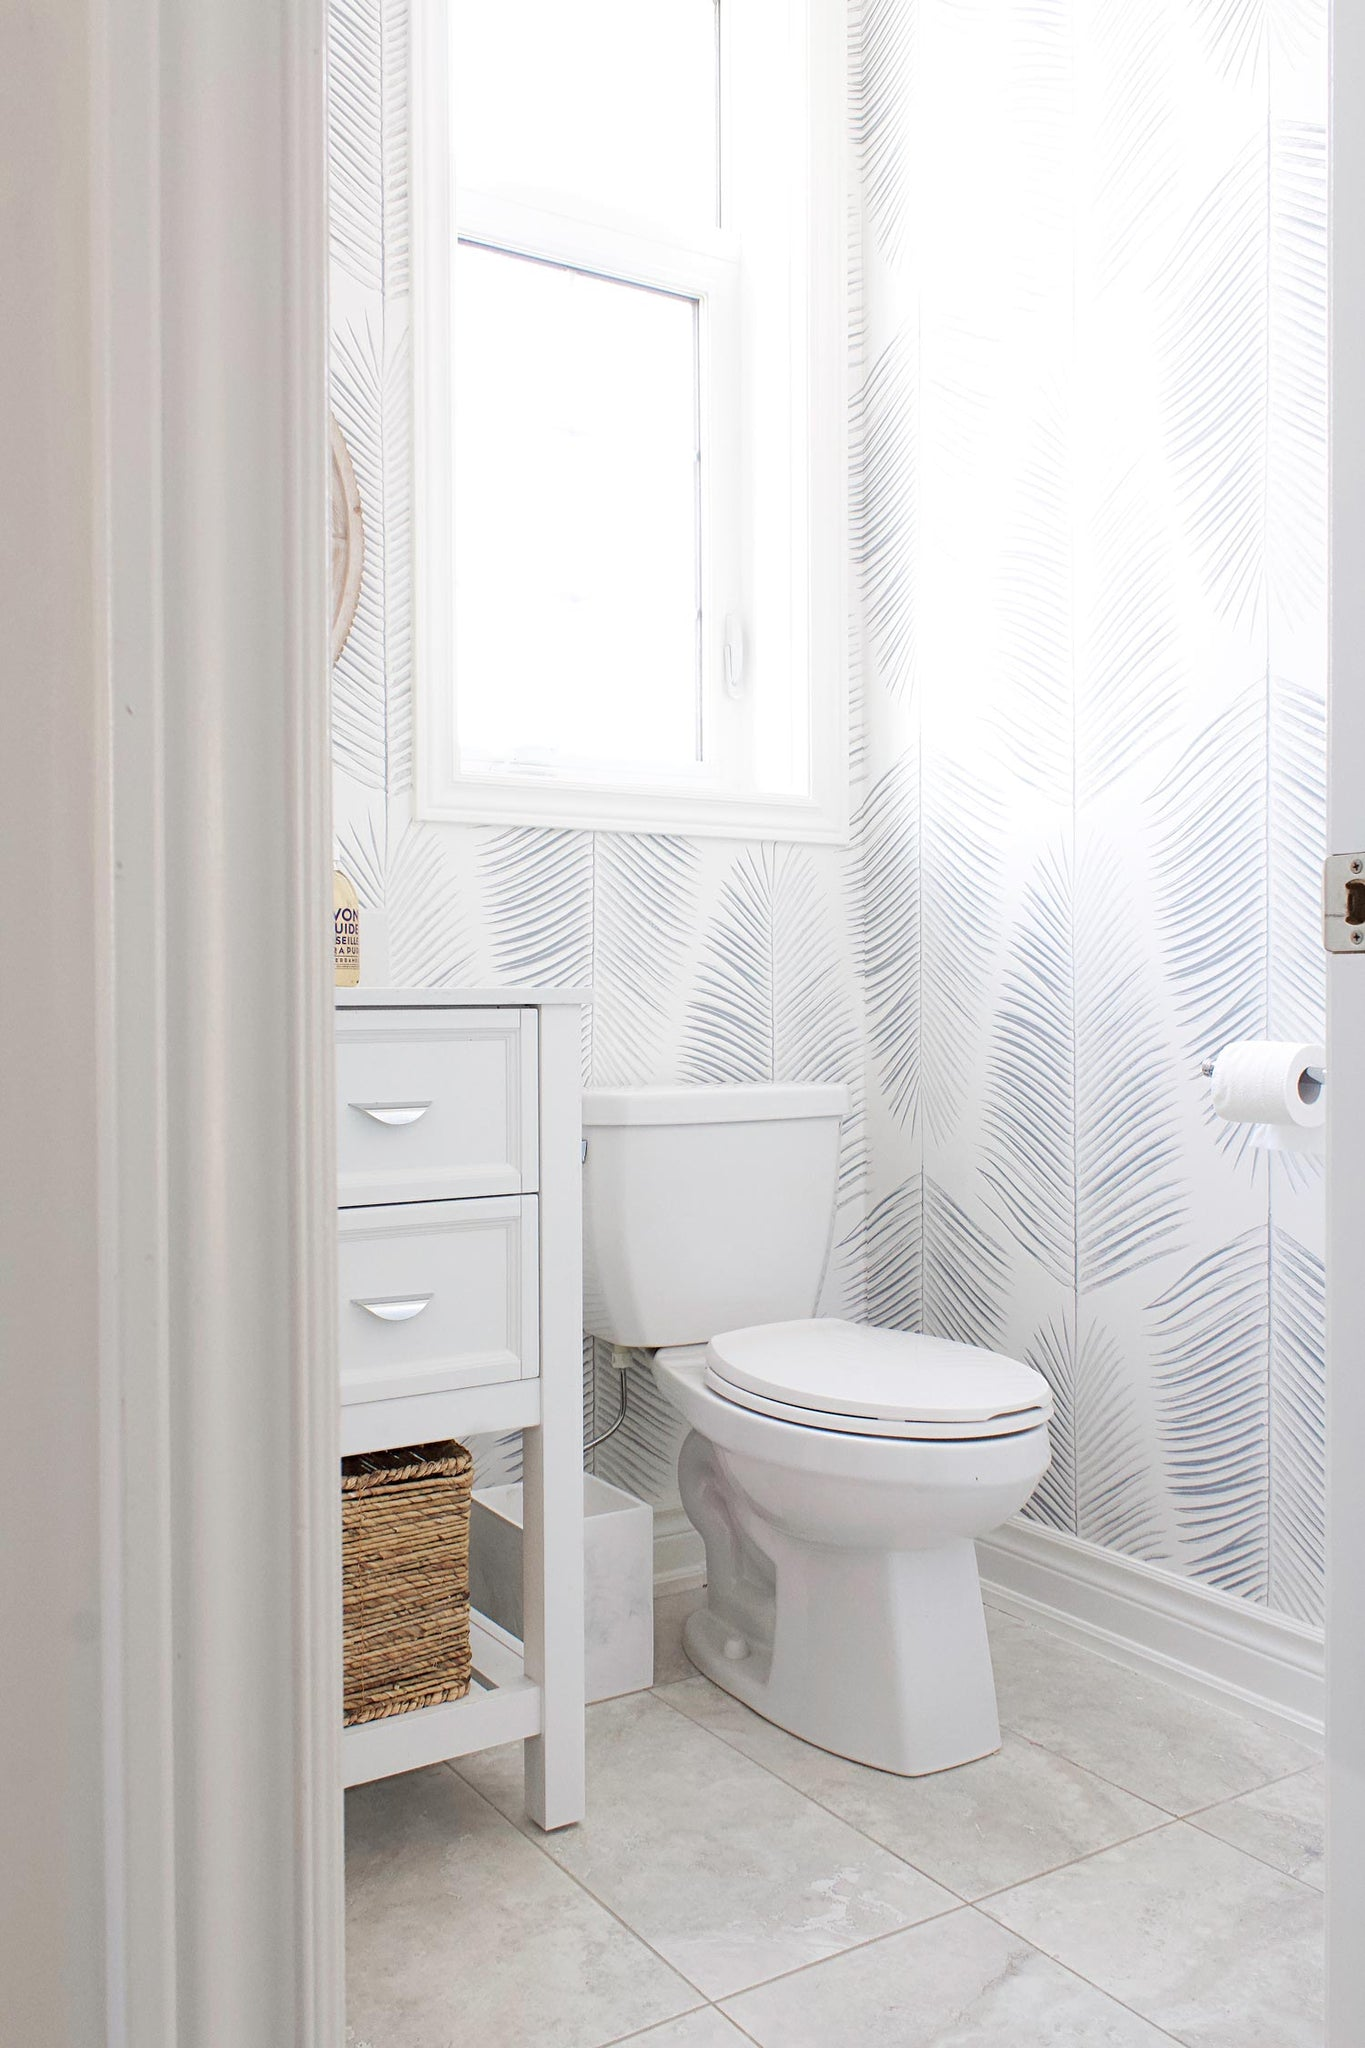 DIY at home featuring easy to install wallpaper in coastal Hamptons style